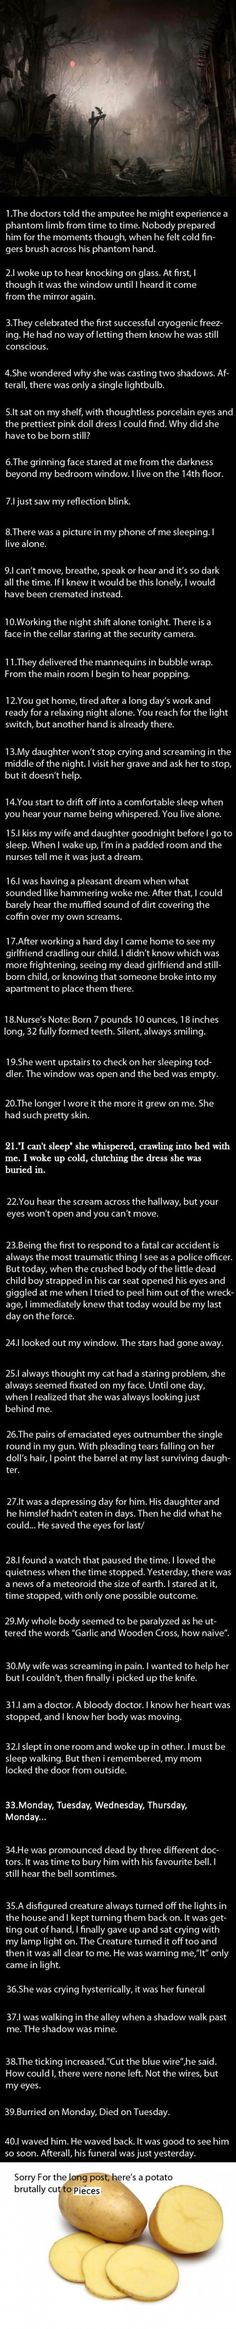 40 Short Scary Stories.